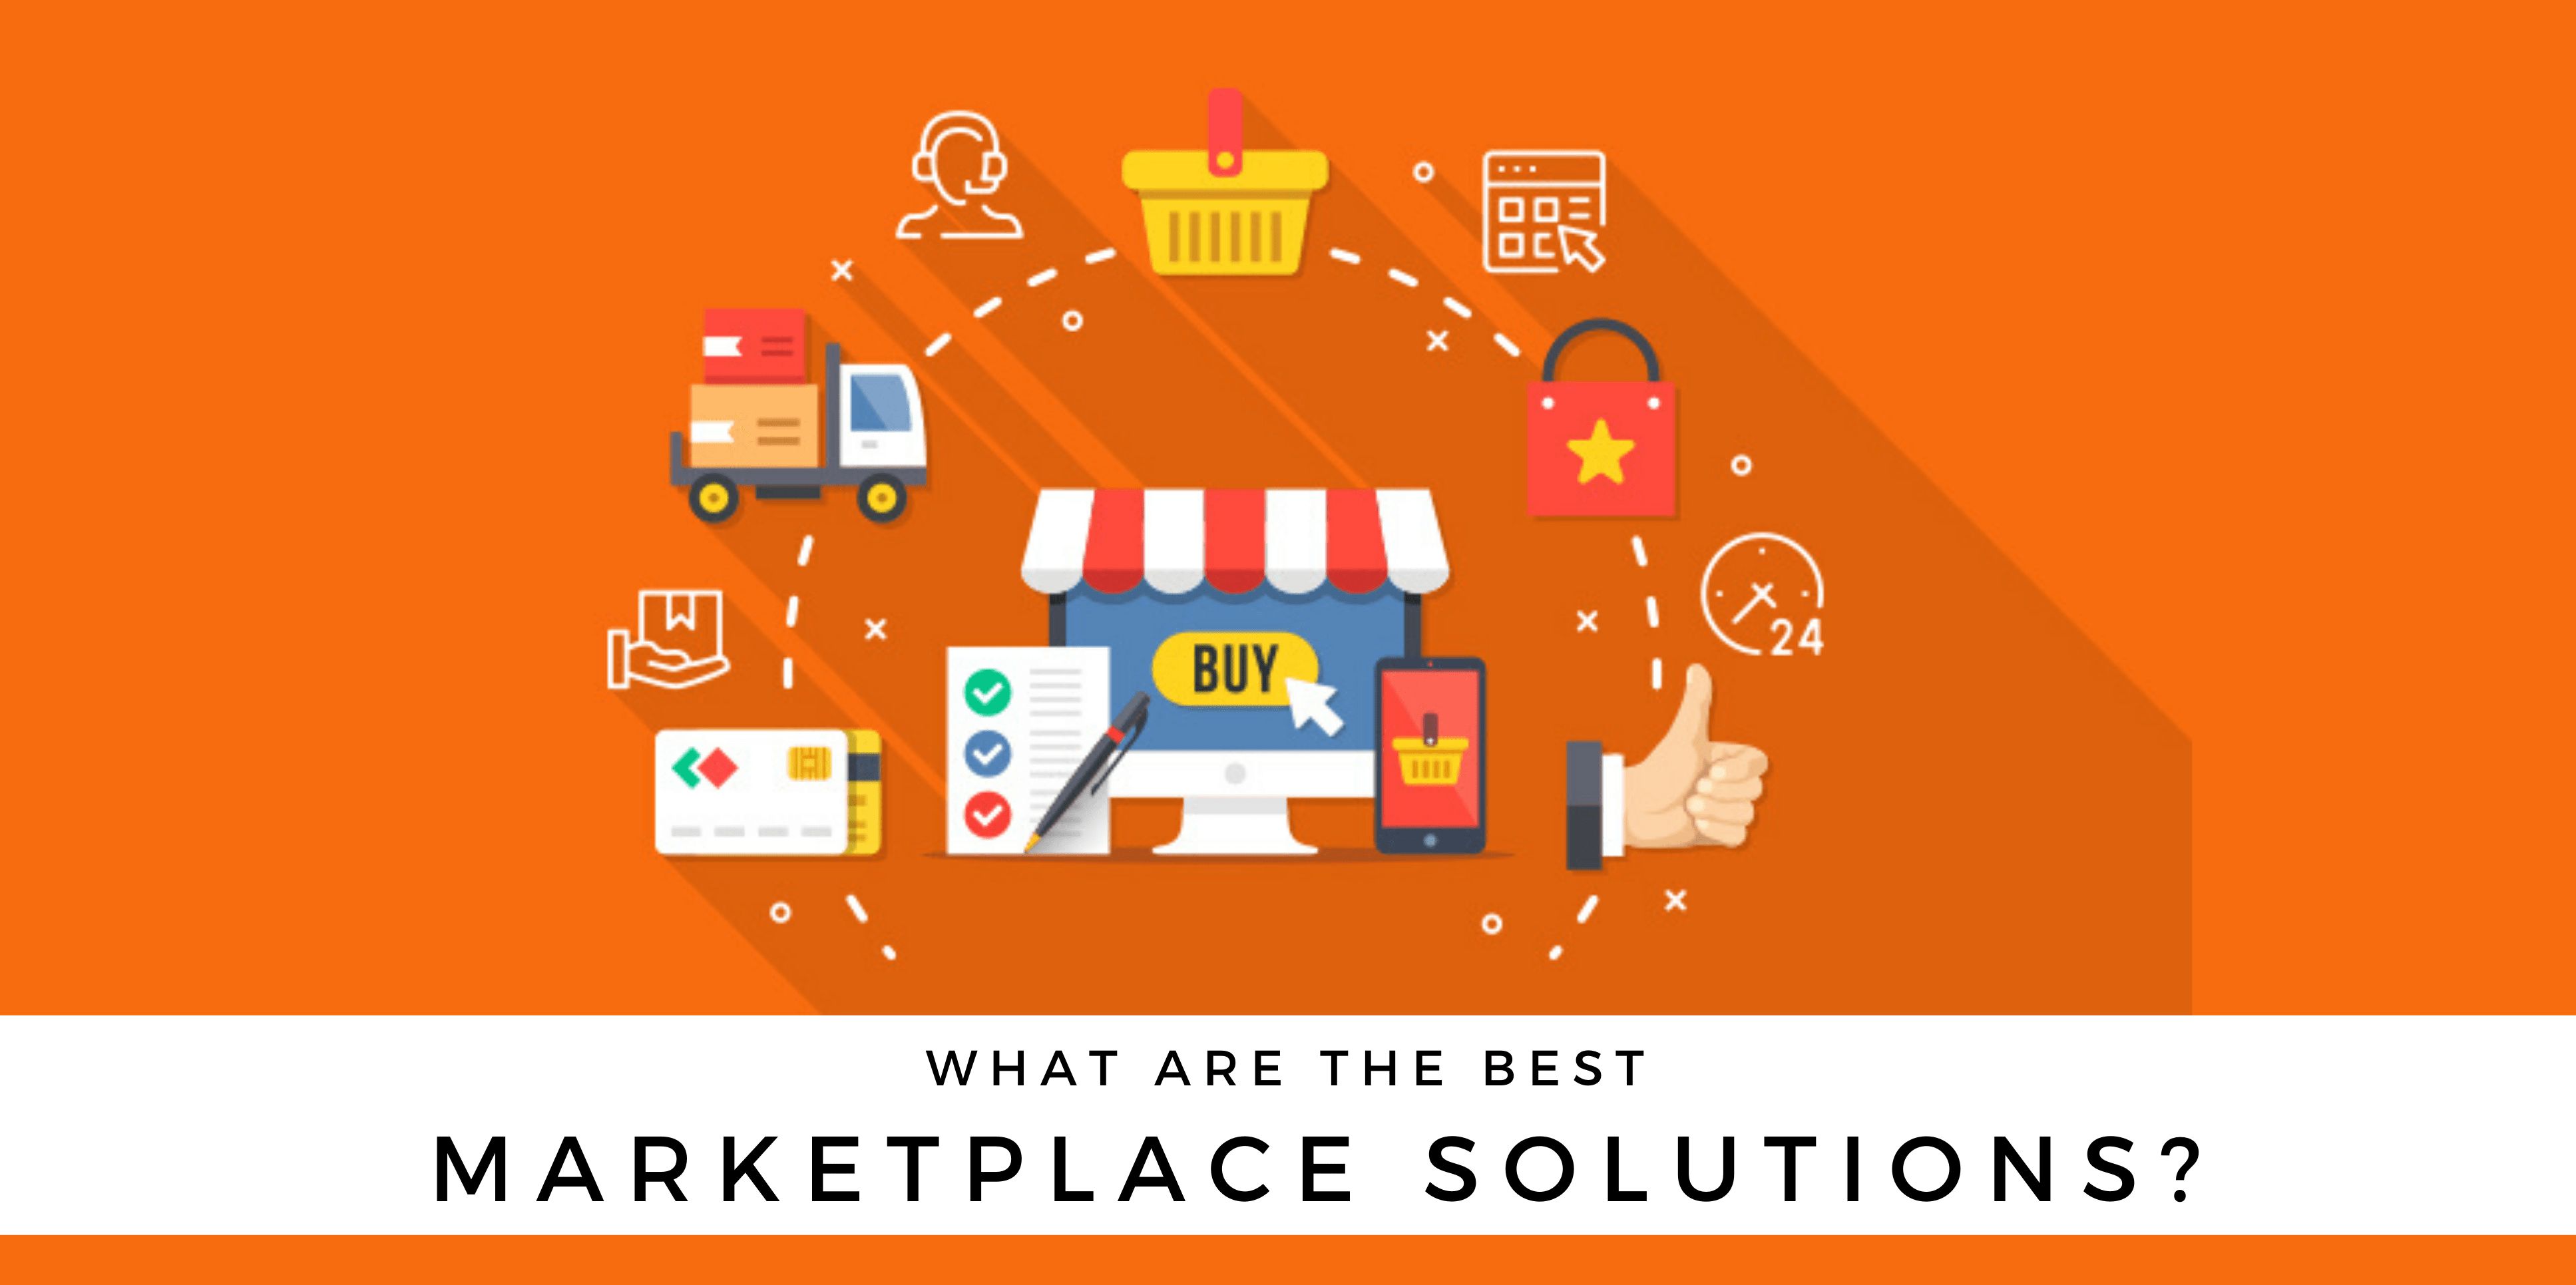 What Are the Best Marketplace Solutions?